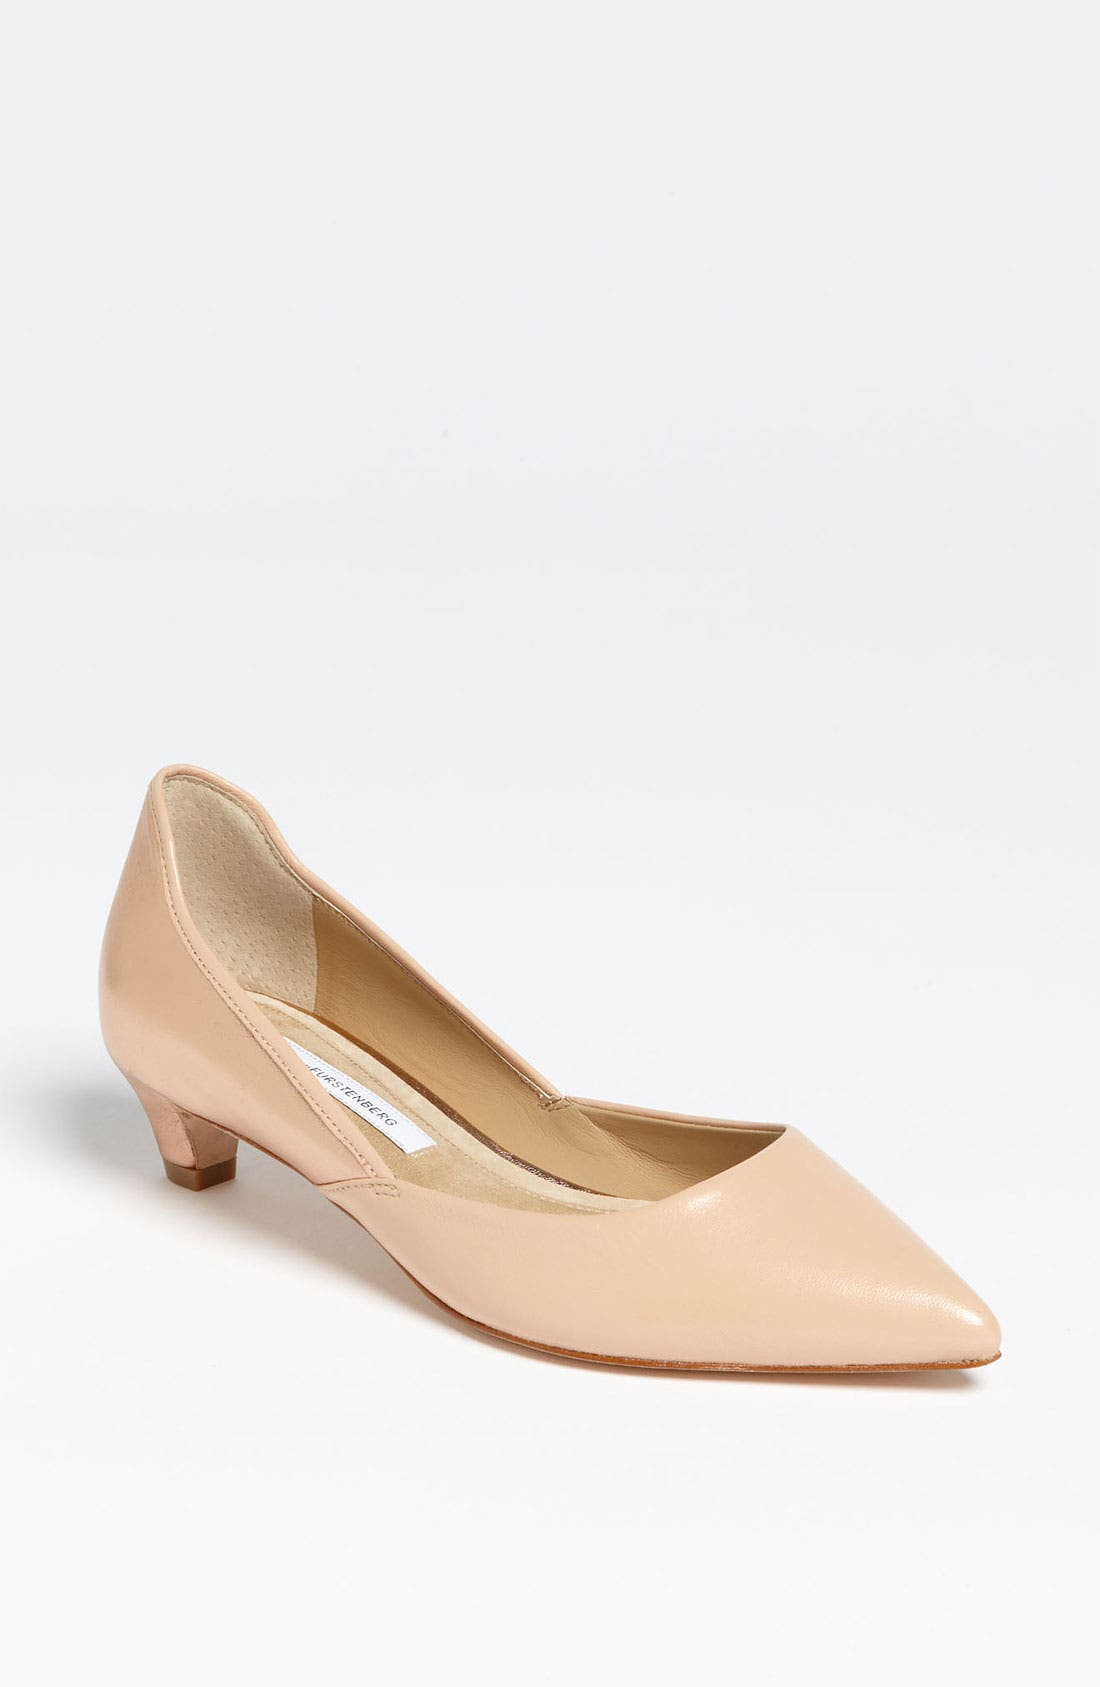 Alternate Image 1 Selected - Diane von Furstenberg 'Alice' Pump (Online Only)